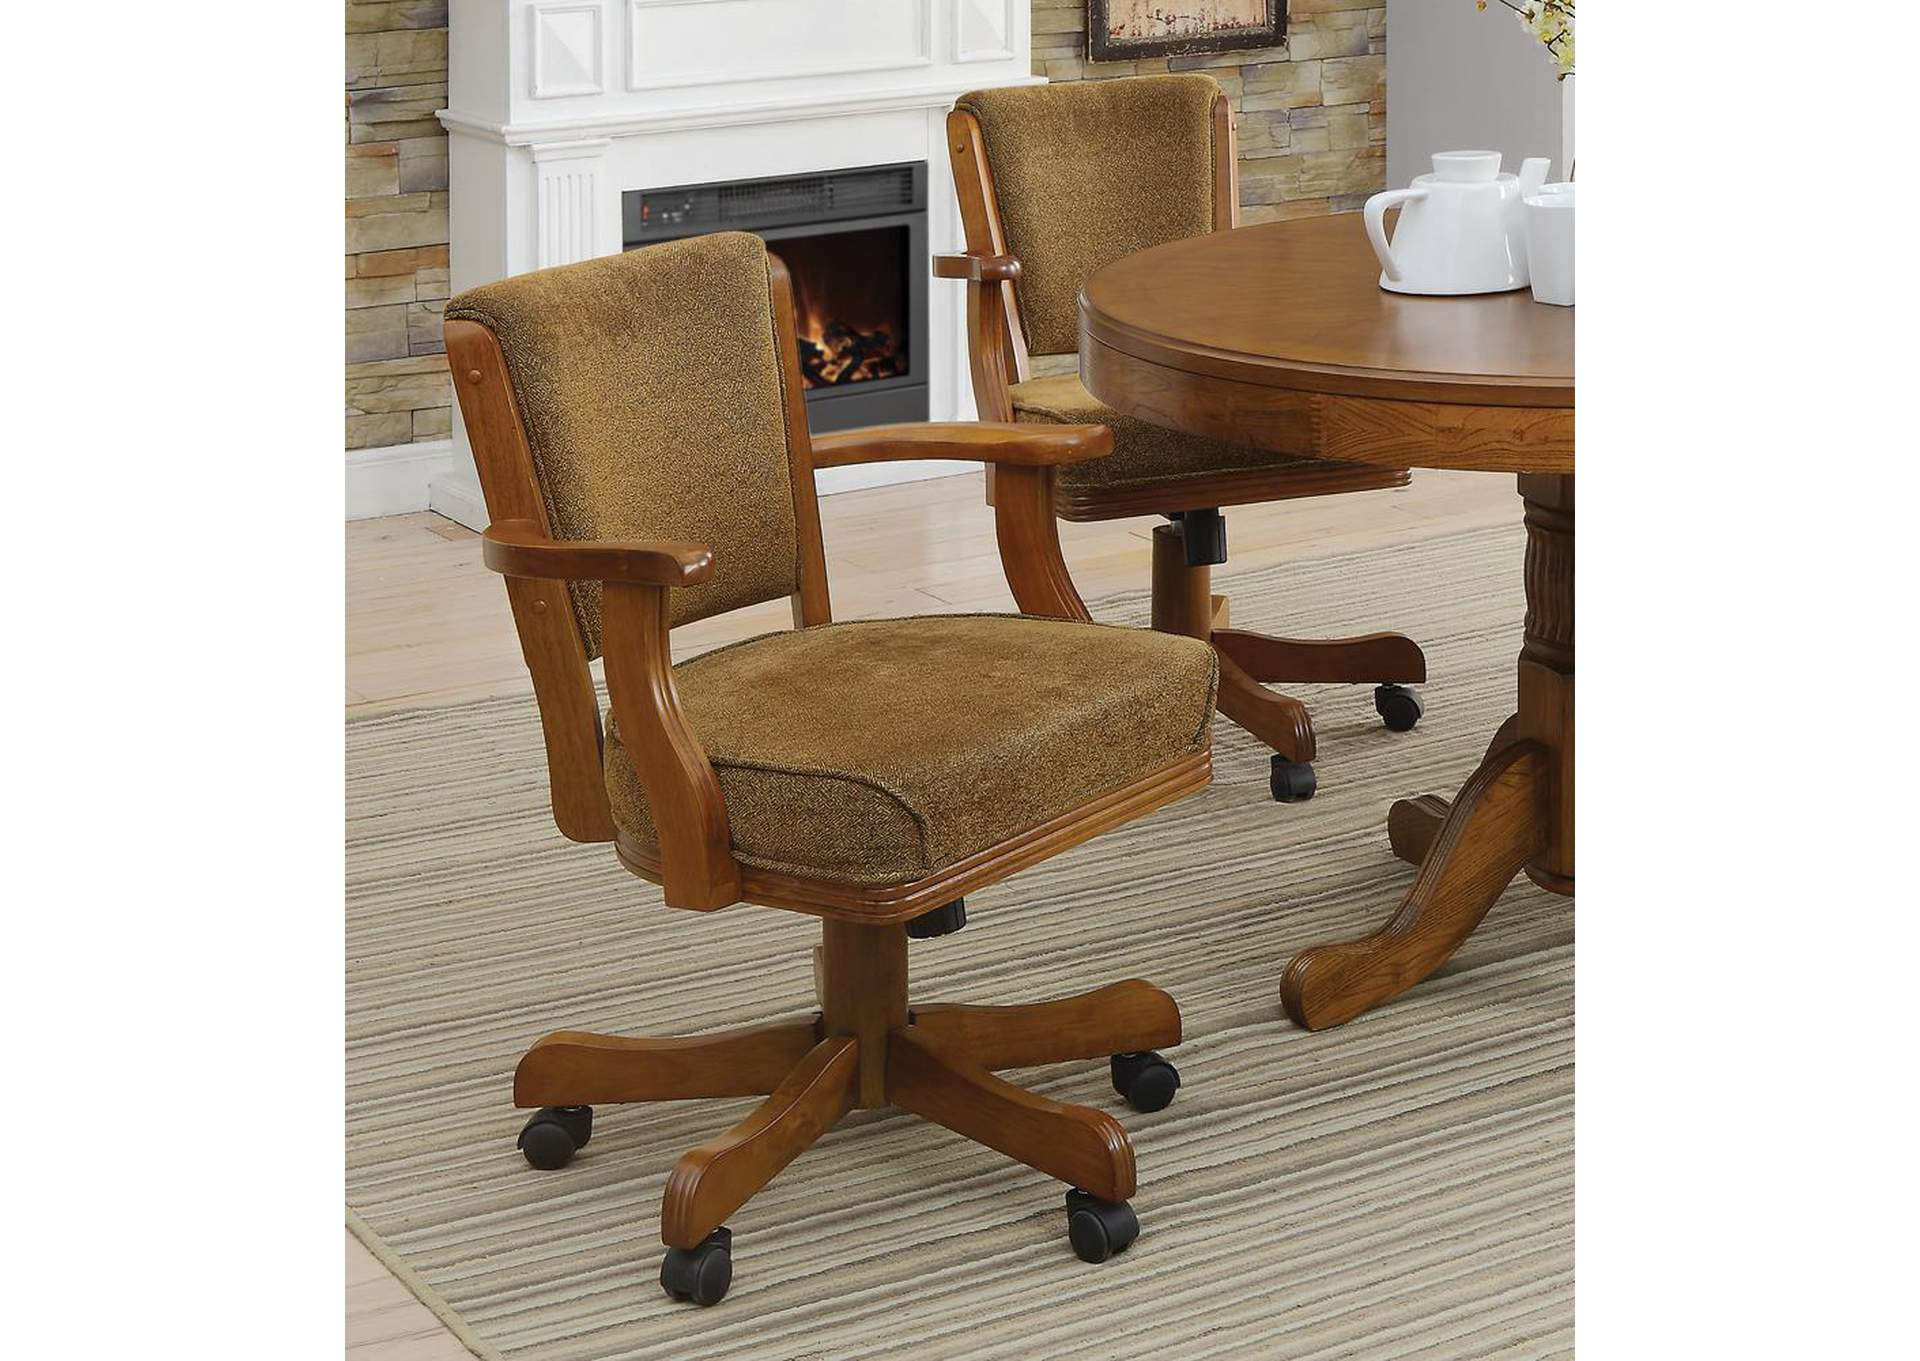 Mitchell Amber Game Chair,Coaster Furniture